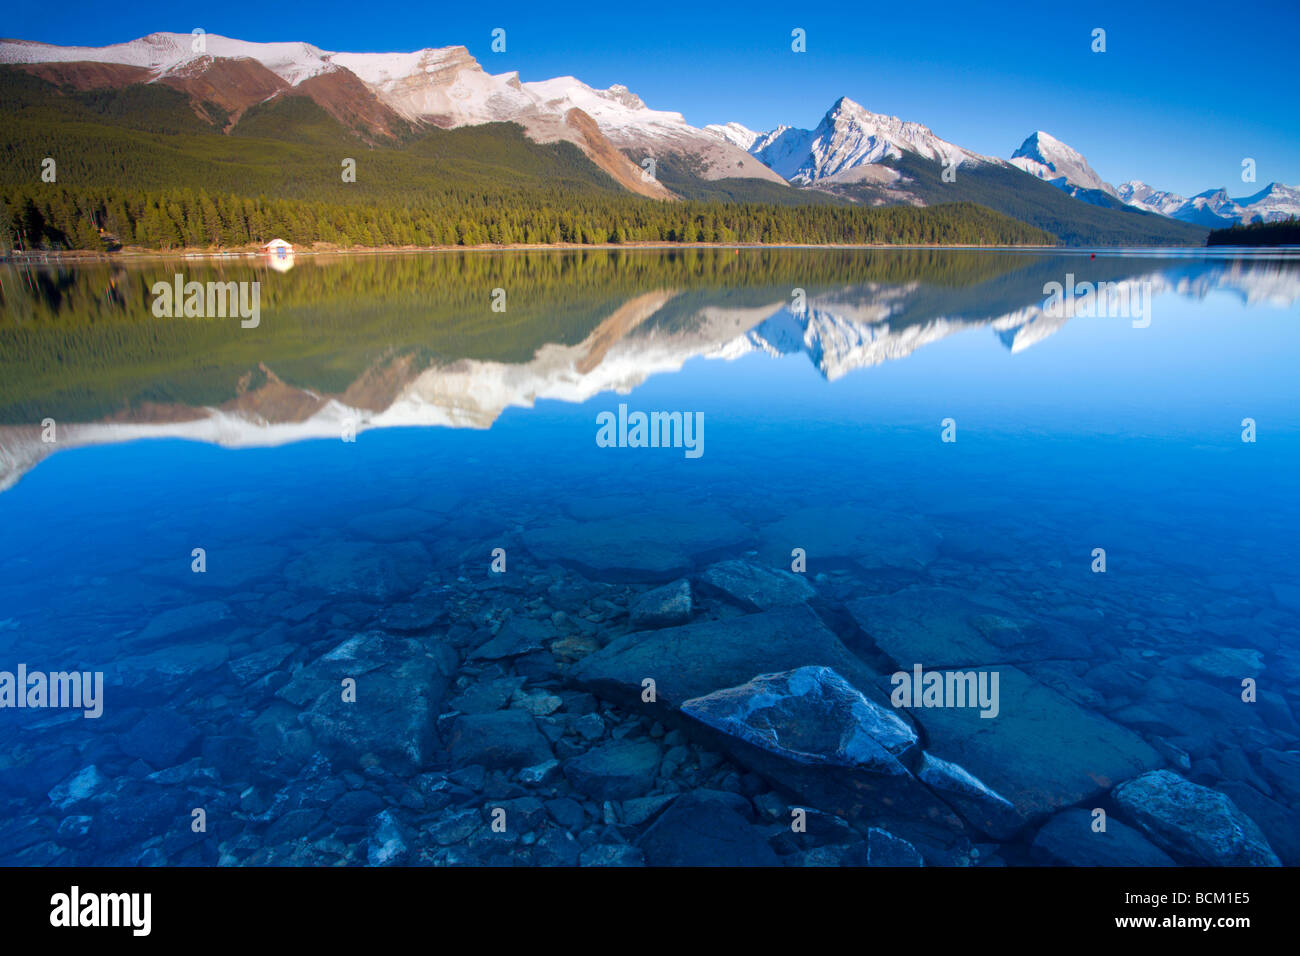 crystal clear lake water stock photos crystal clear lake water stock images alamy. Black Bedroom Furniture Sets. Home Design Ideas